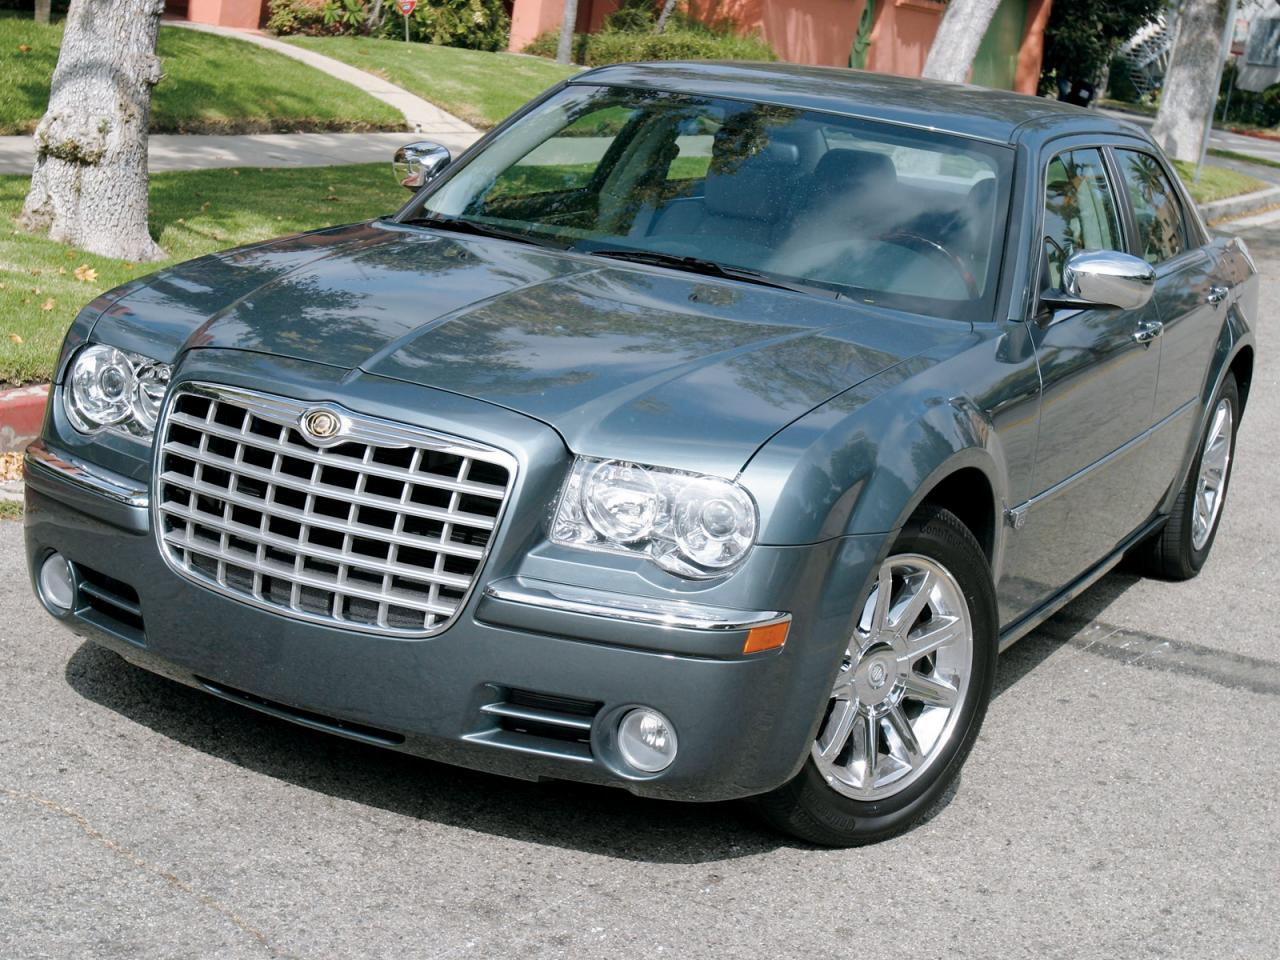 2005 Chrysler 300 Information And Photos Zombiedrive